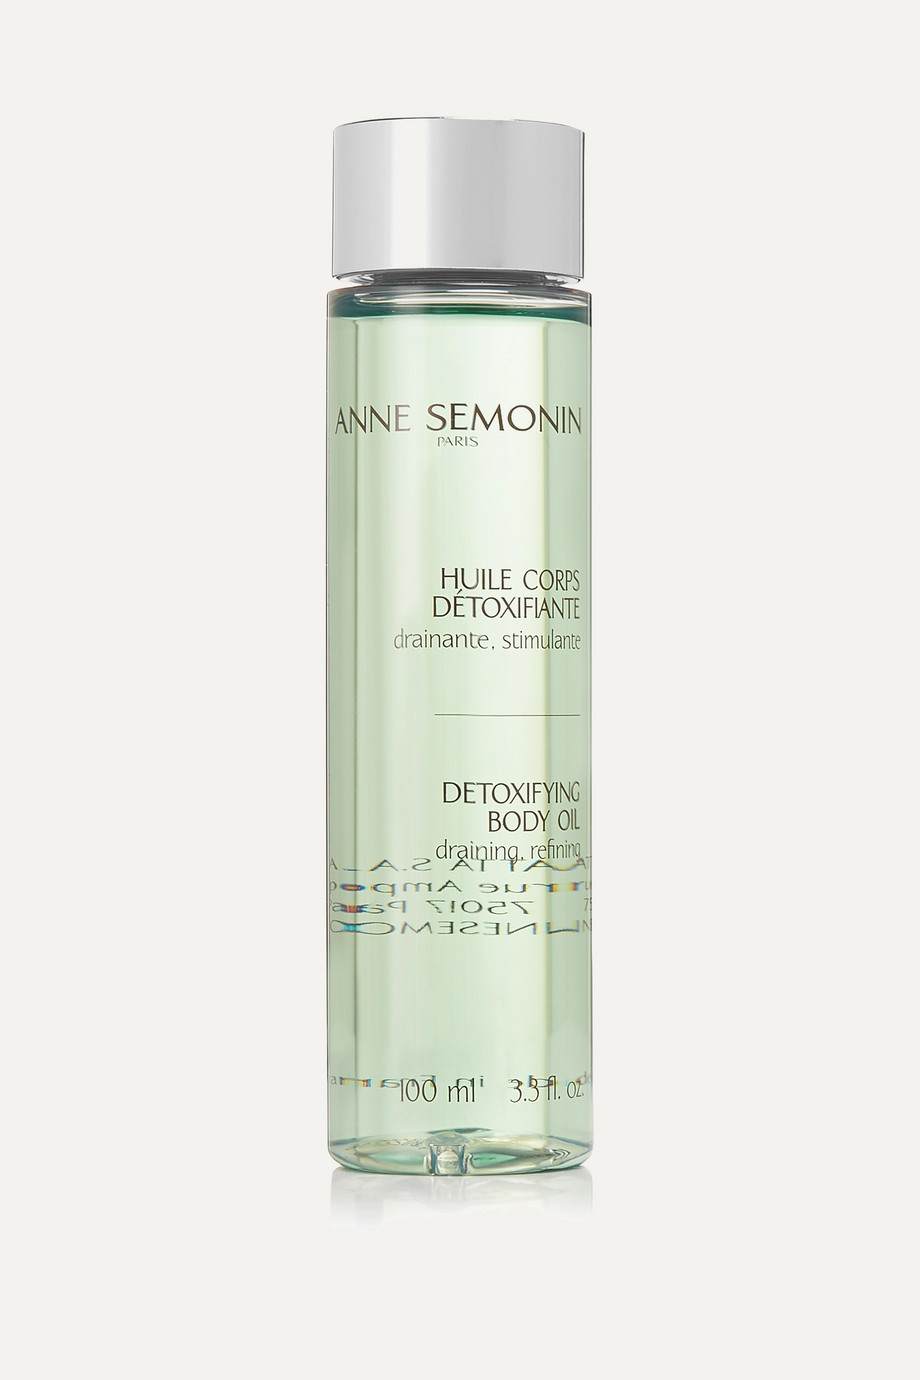 Anne Semonin Detoxifying Body Oil, 100ml